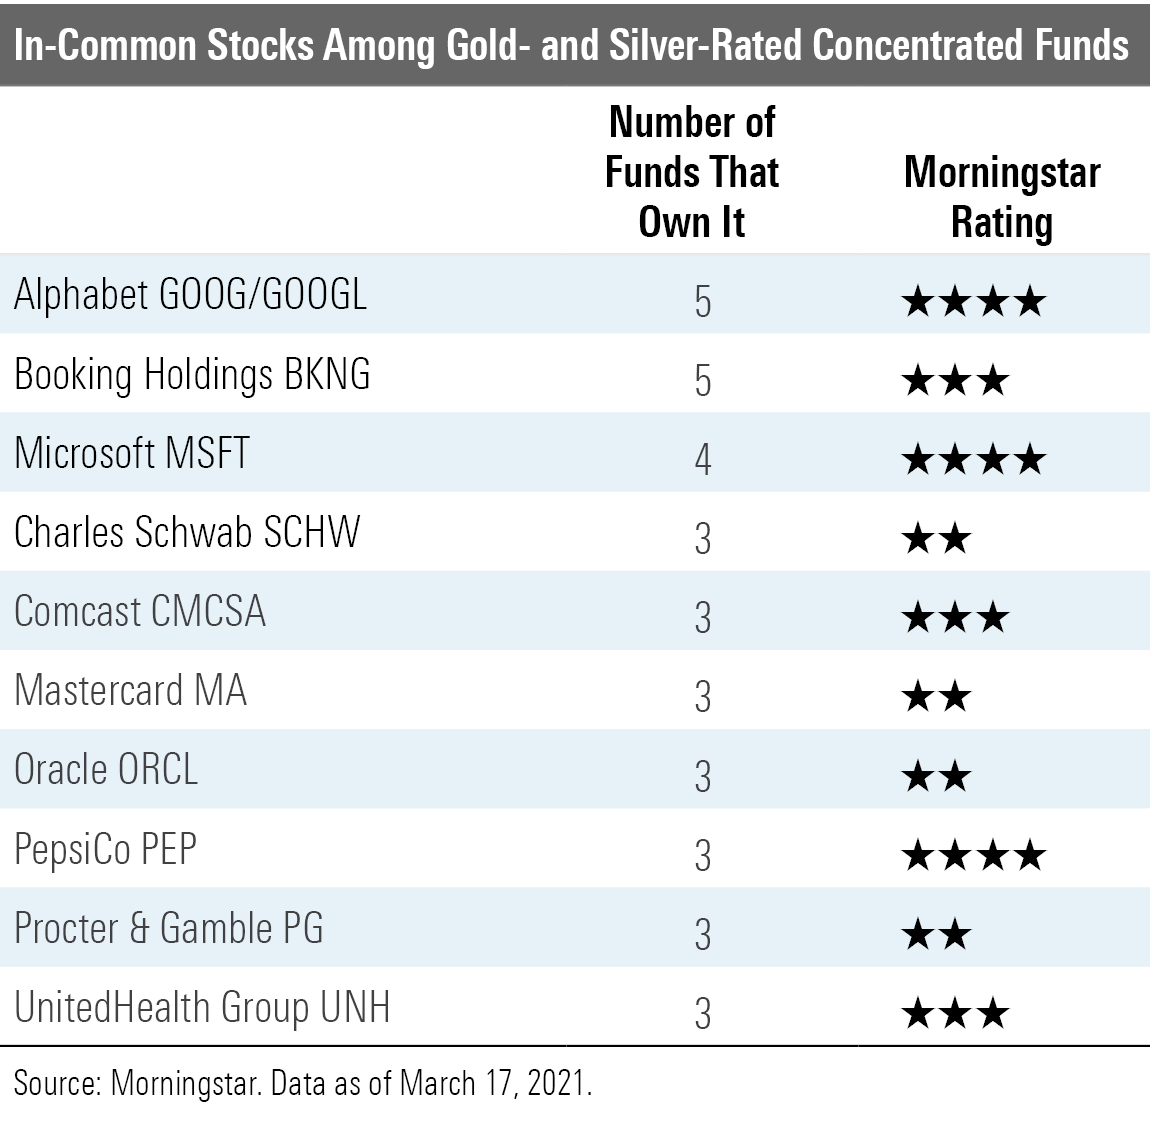 In-Common Stocks Among Gold and Silver Rated Concentrated Funds